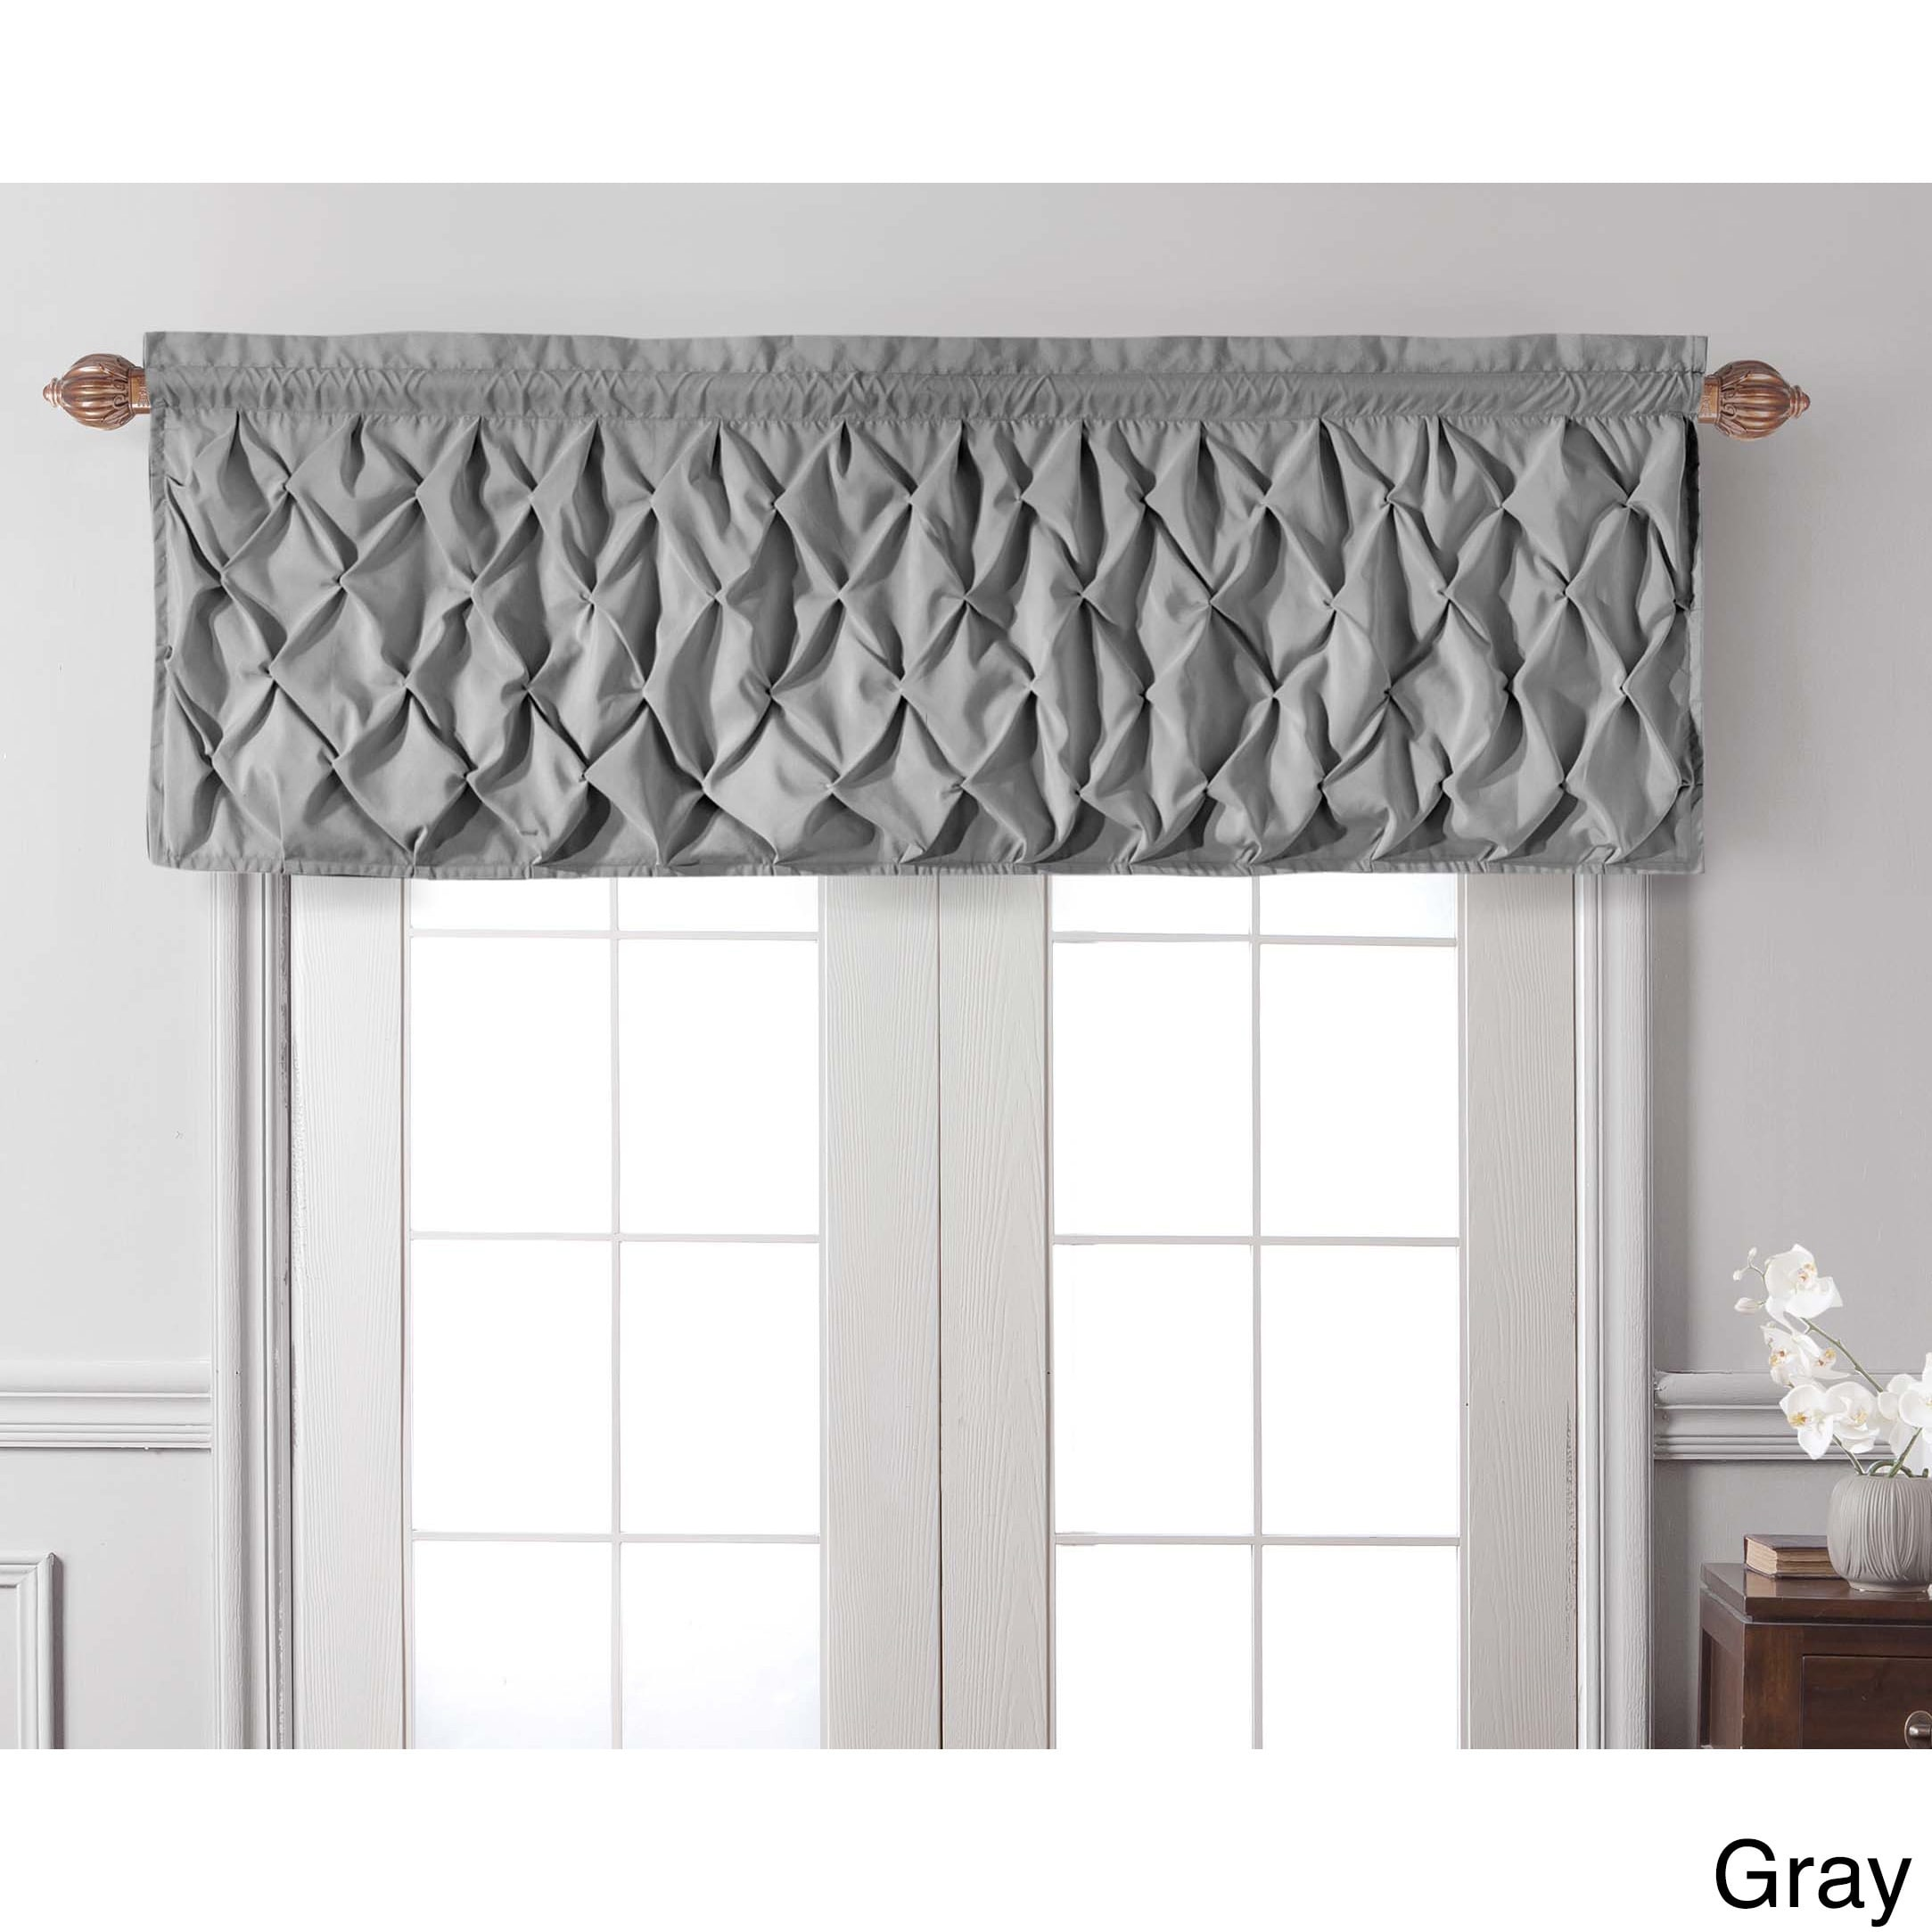 windowatmentsnavy size concept windowtains white valances blue bathroom full window windows image your shocking curtain for curtains decorate of treatmentsnavy curtins and navy valance